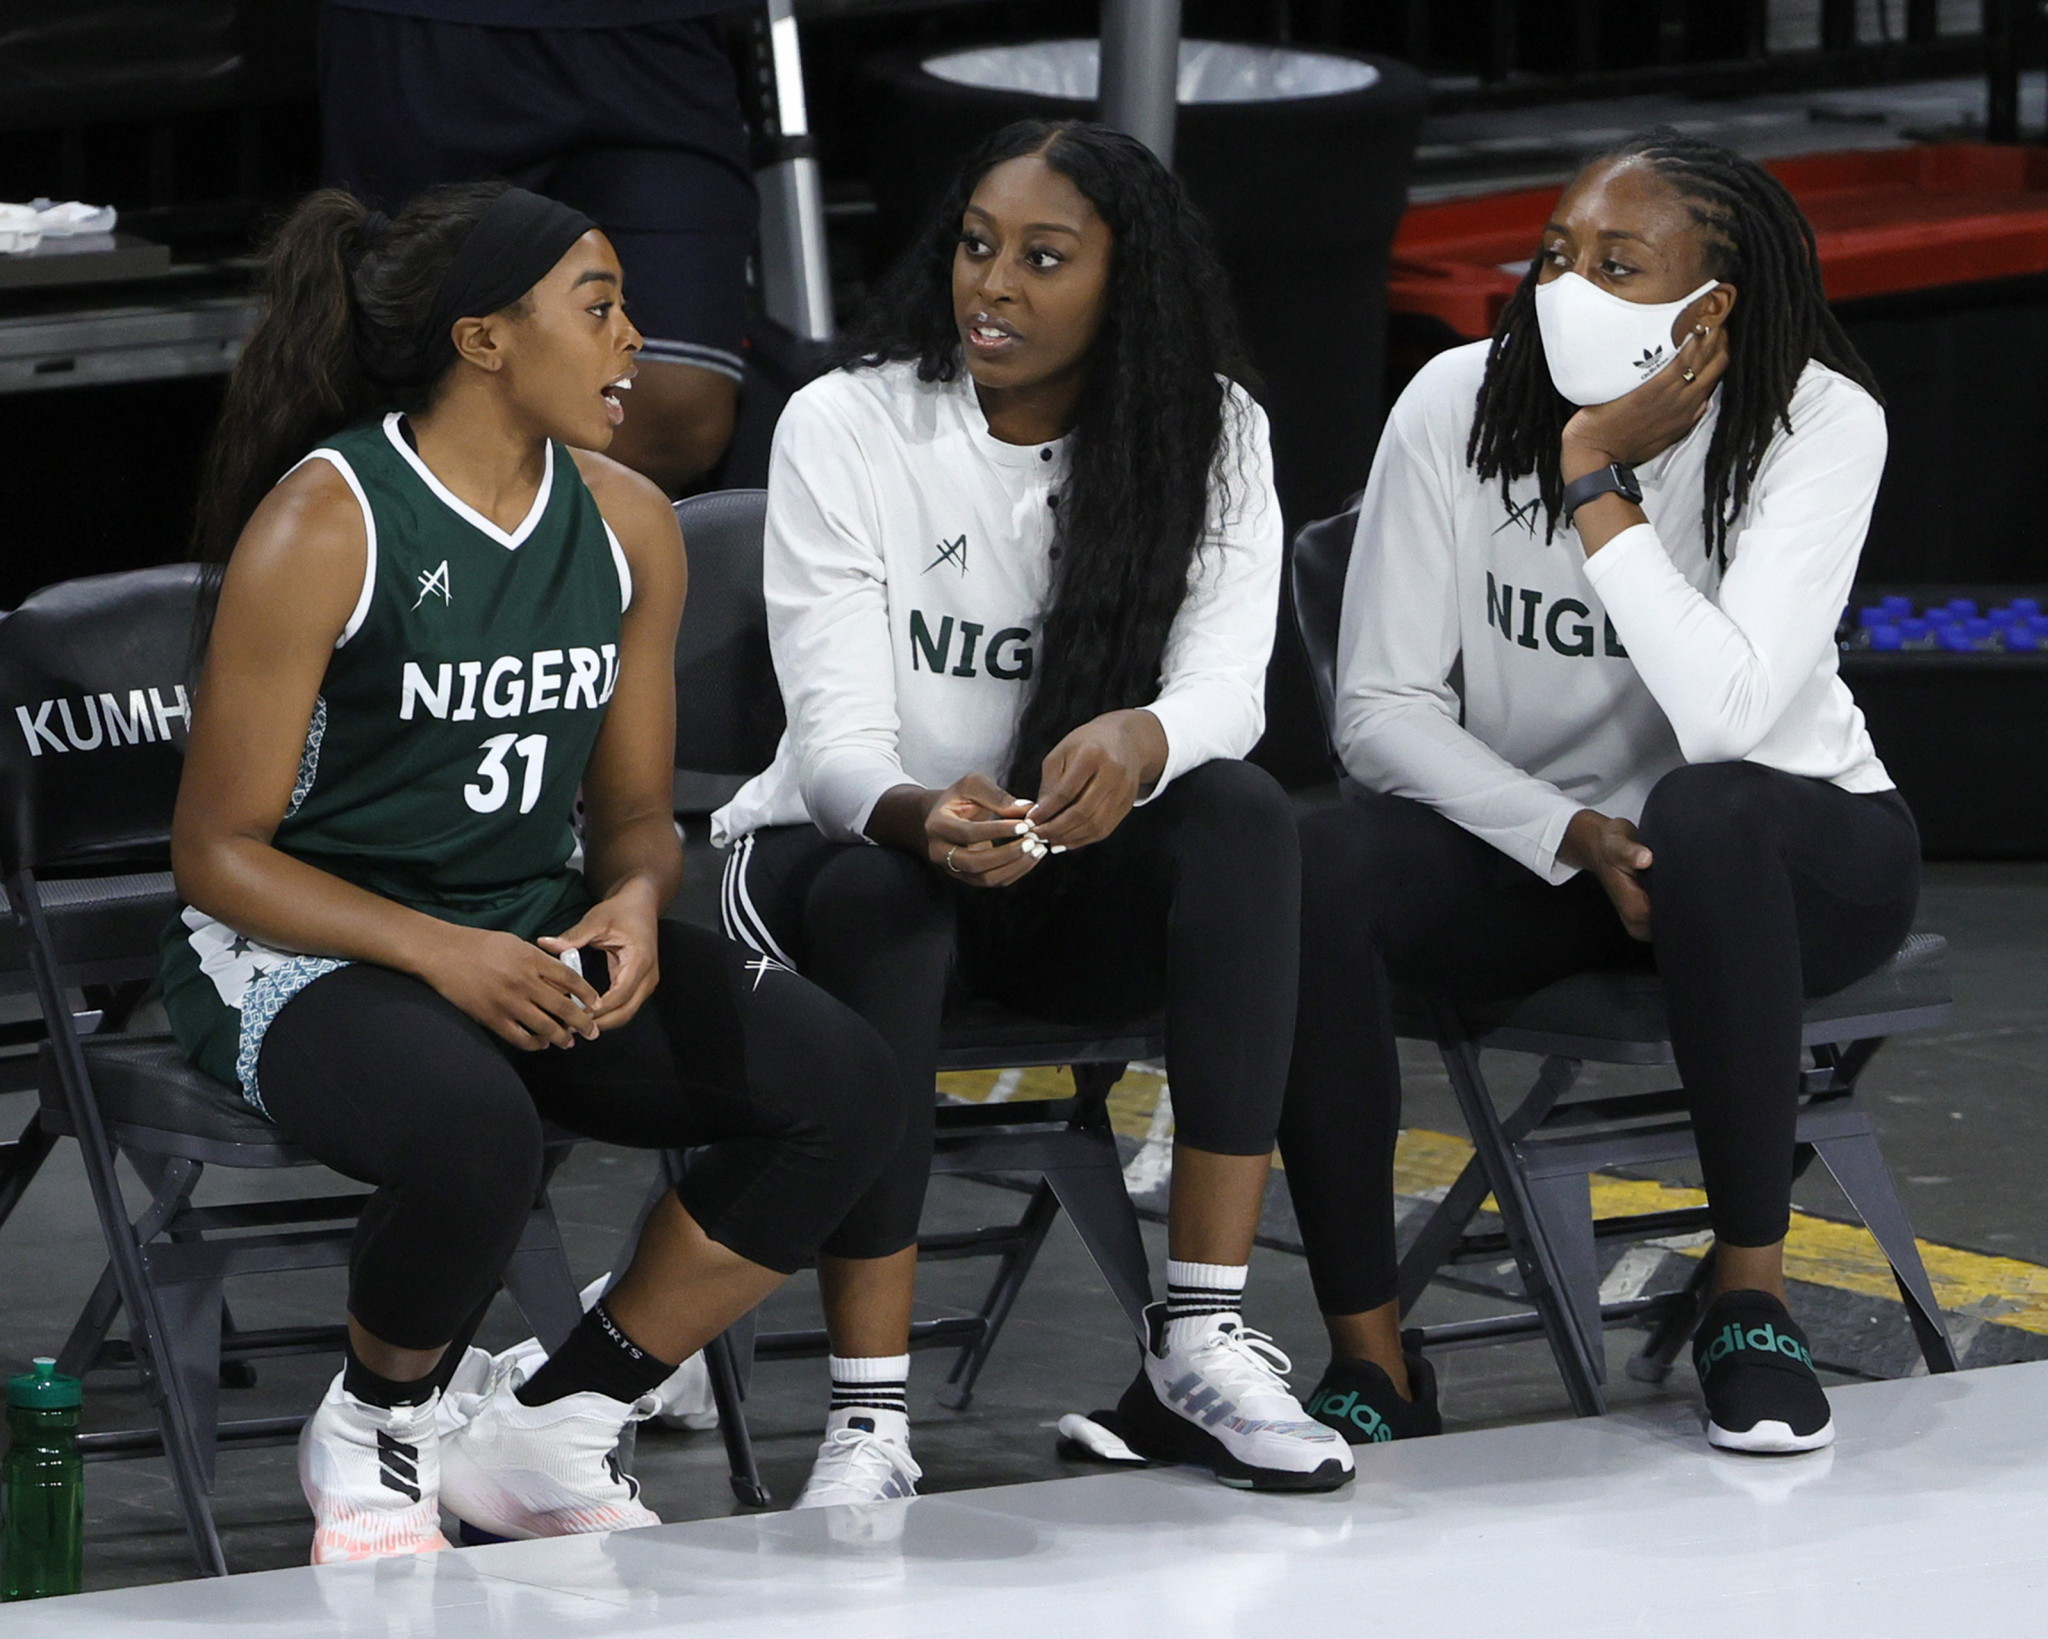 CAS rejects basketball pair's bid to represent Nigeria at Tokyo 2020